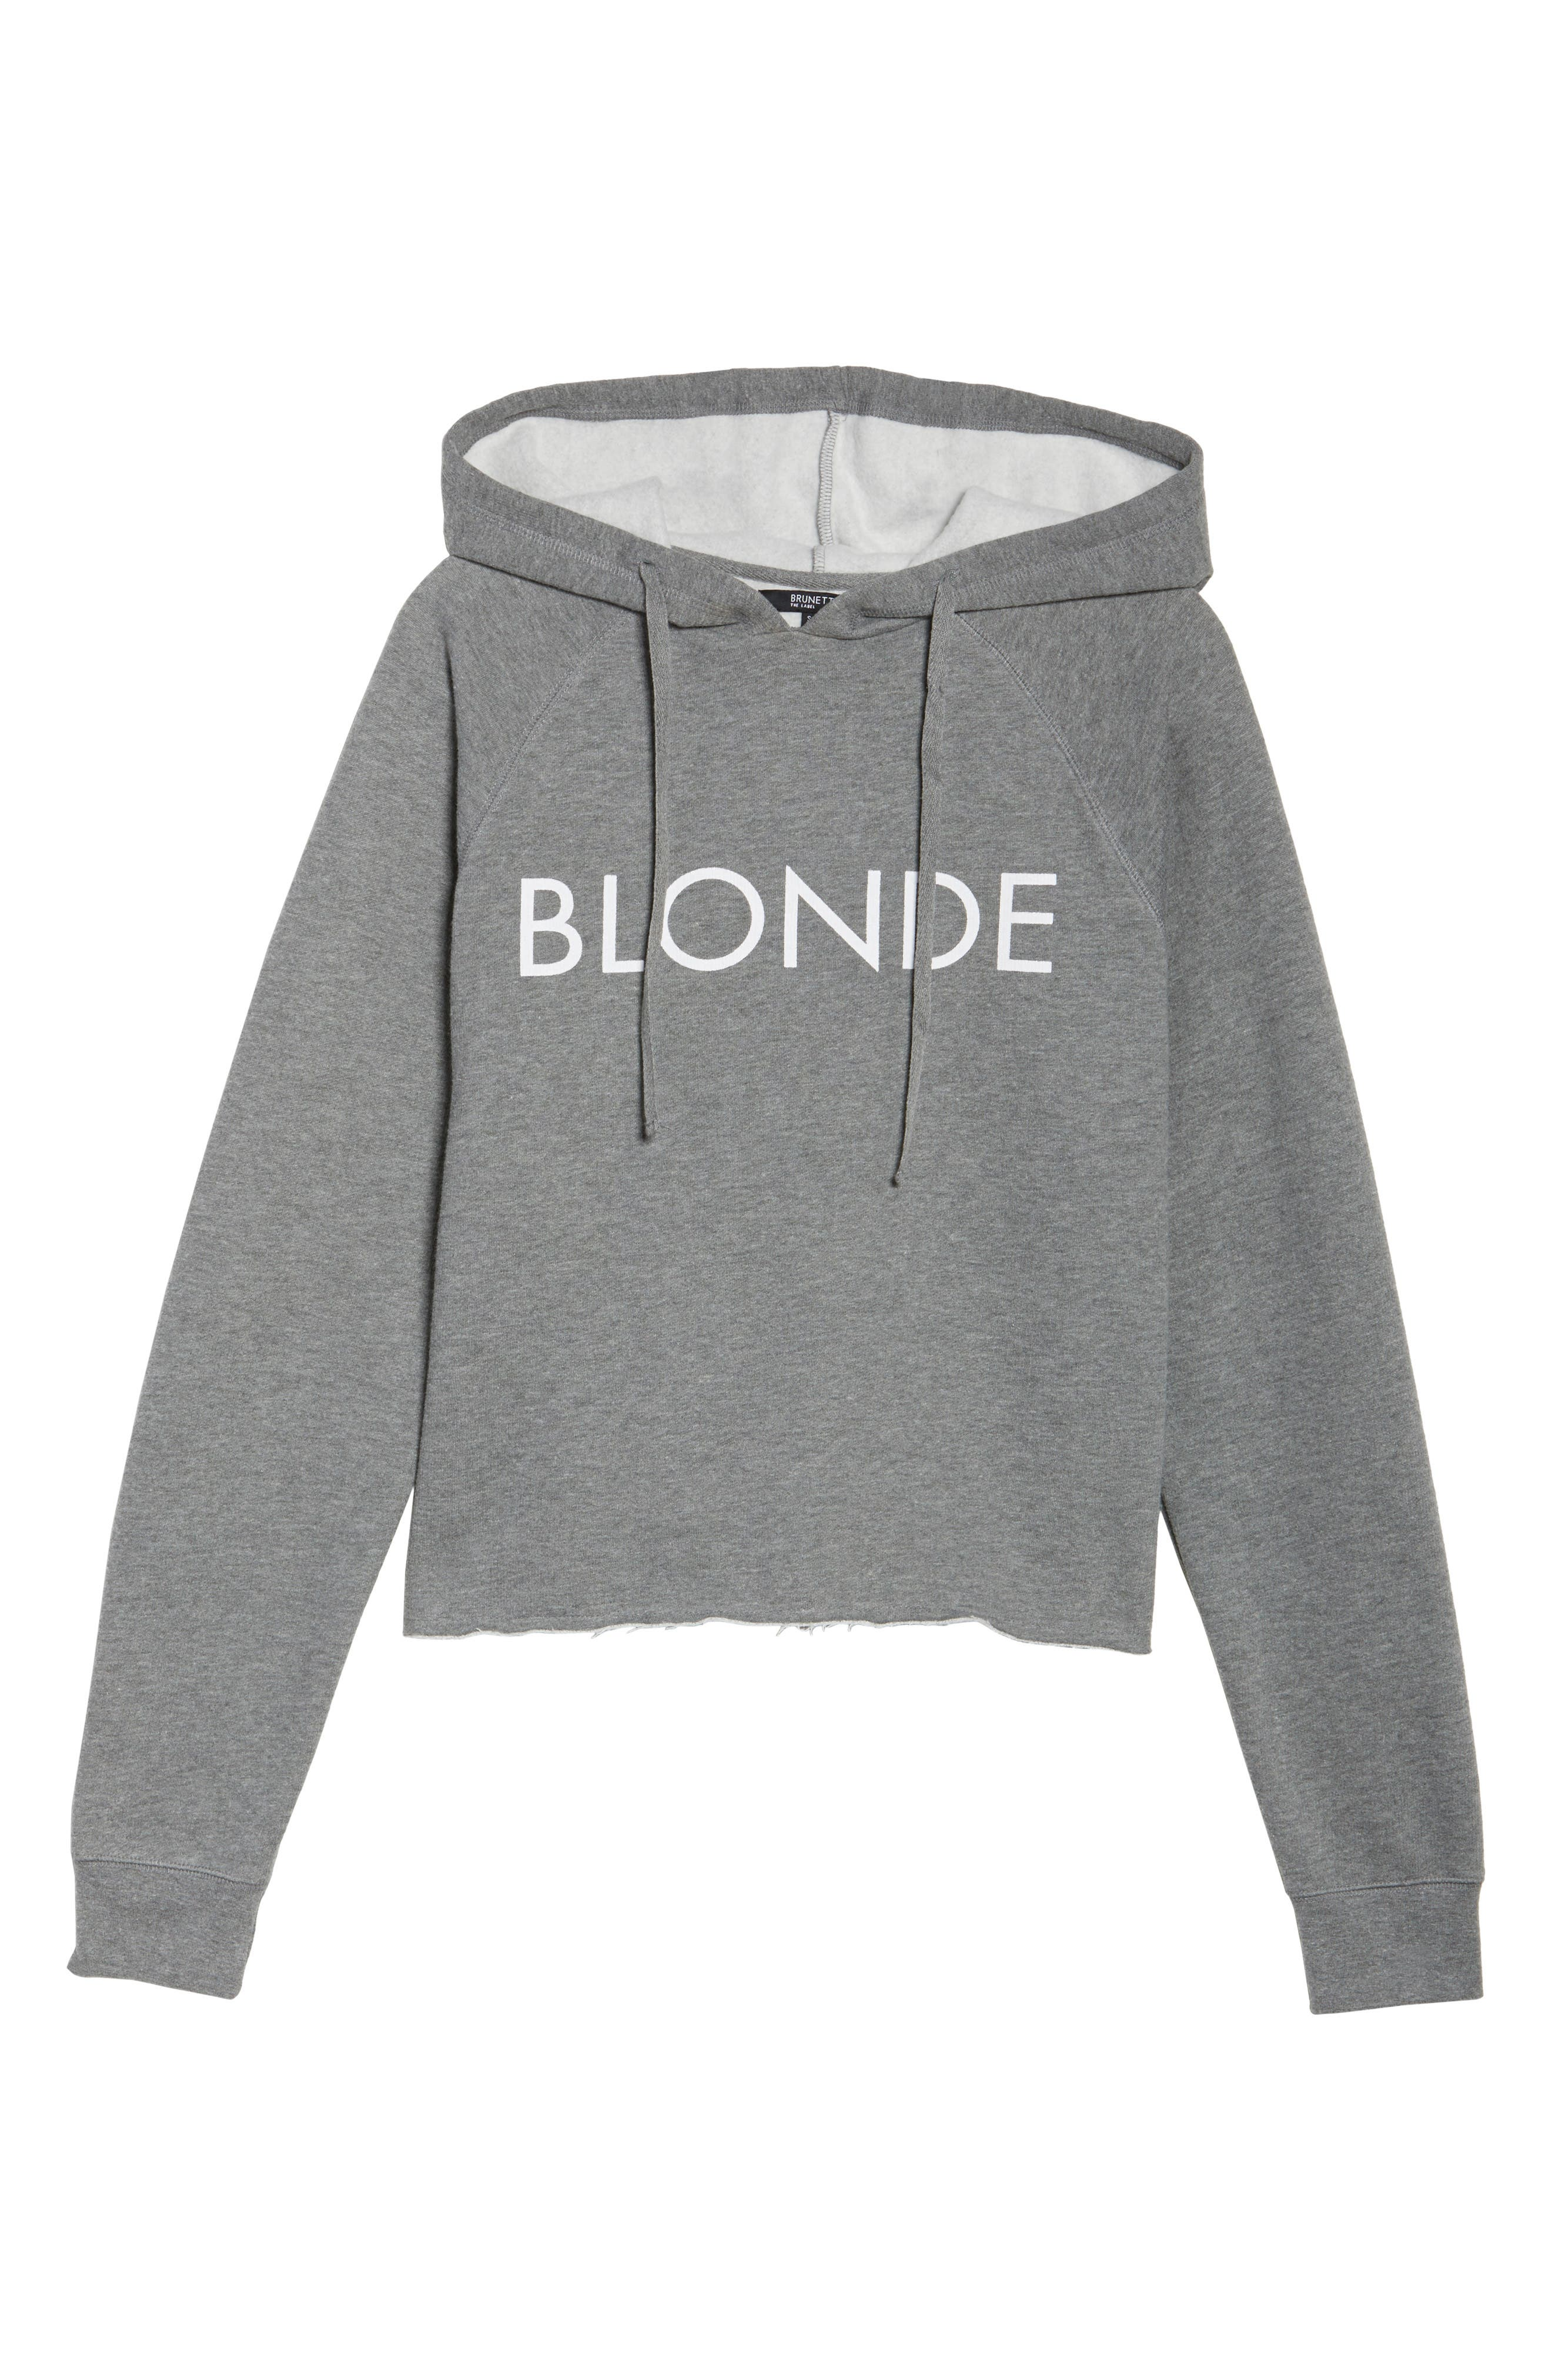 Blonde Raw Hem Hoodie,                             Alternate thumbnail 6, color,                             HEATHER GREY WHITE